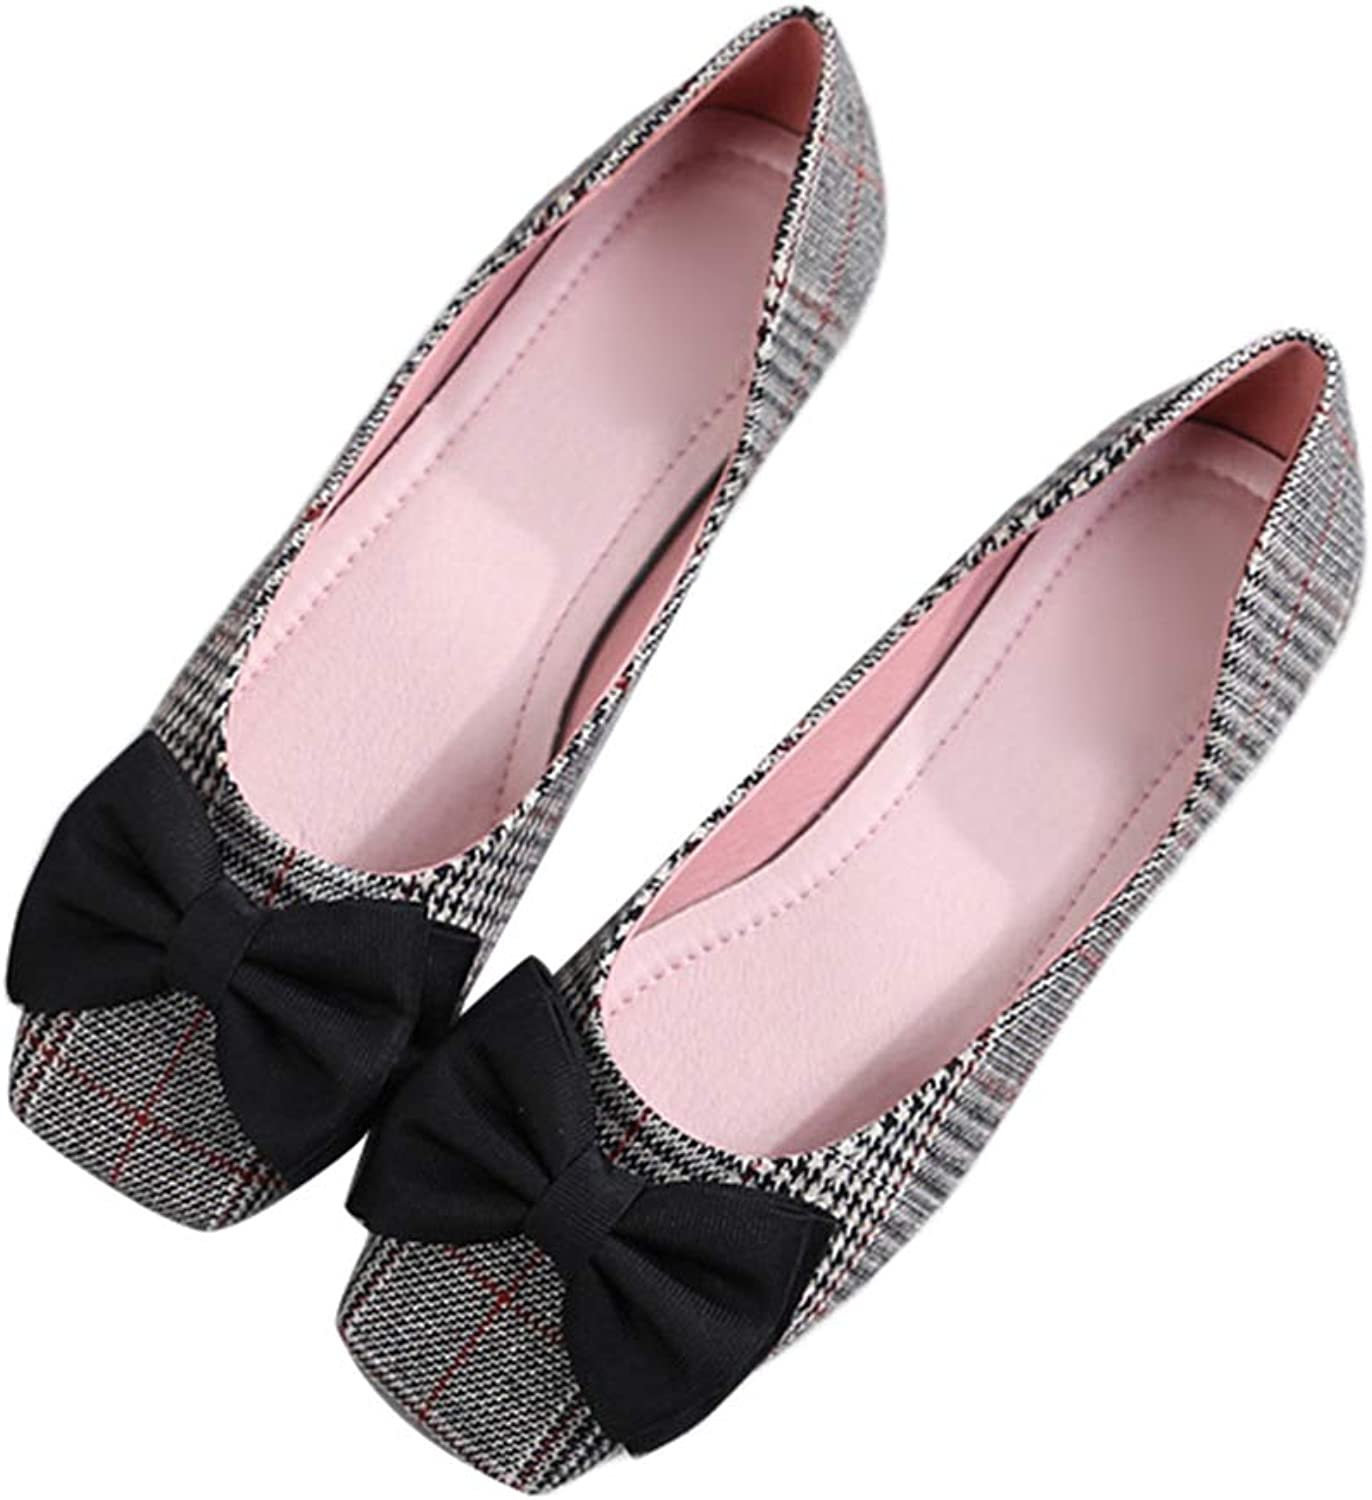 Kyle Walsh Pa Women Flats shoes Square Toe Bowknot Ladies Elegant Comfortable Working Driving Moccasins